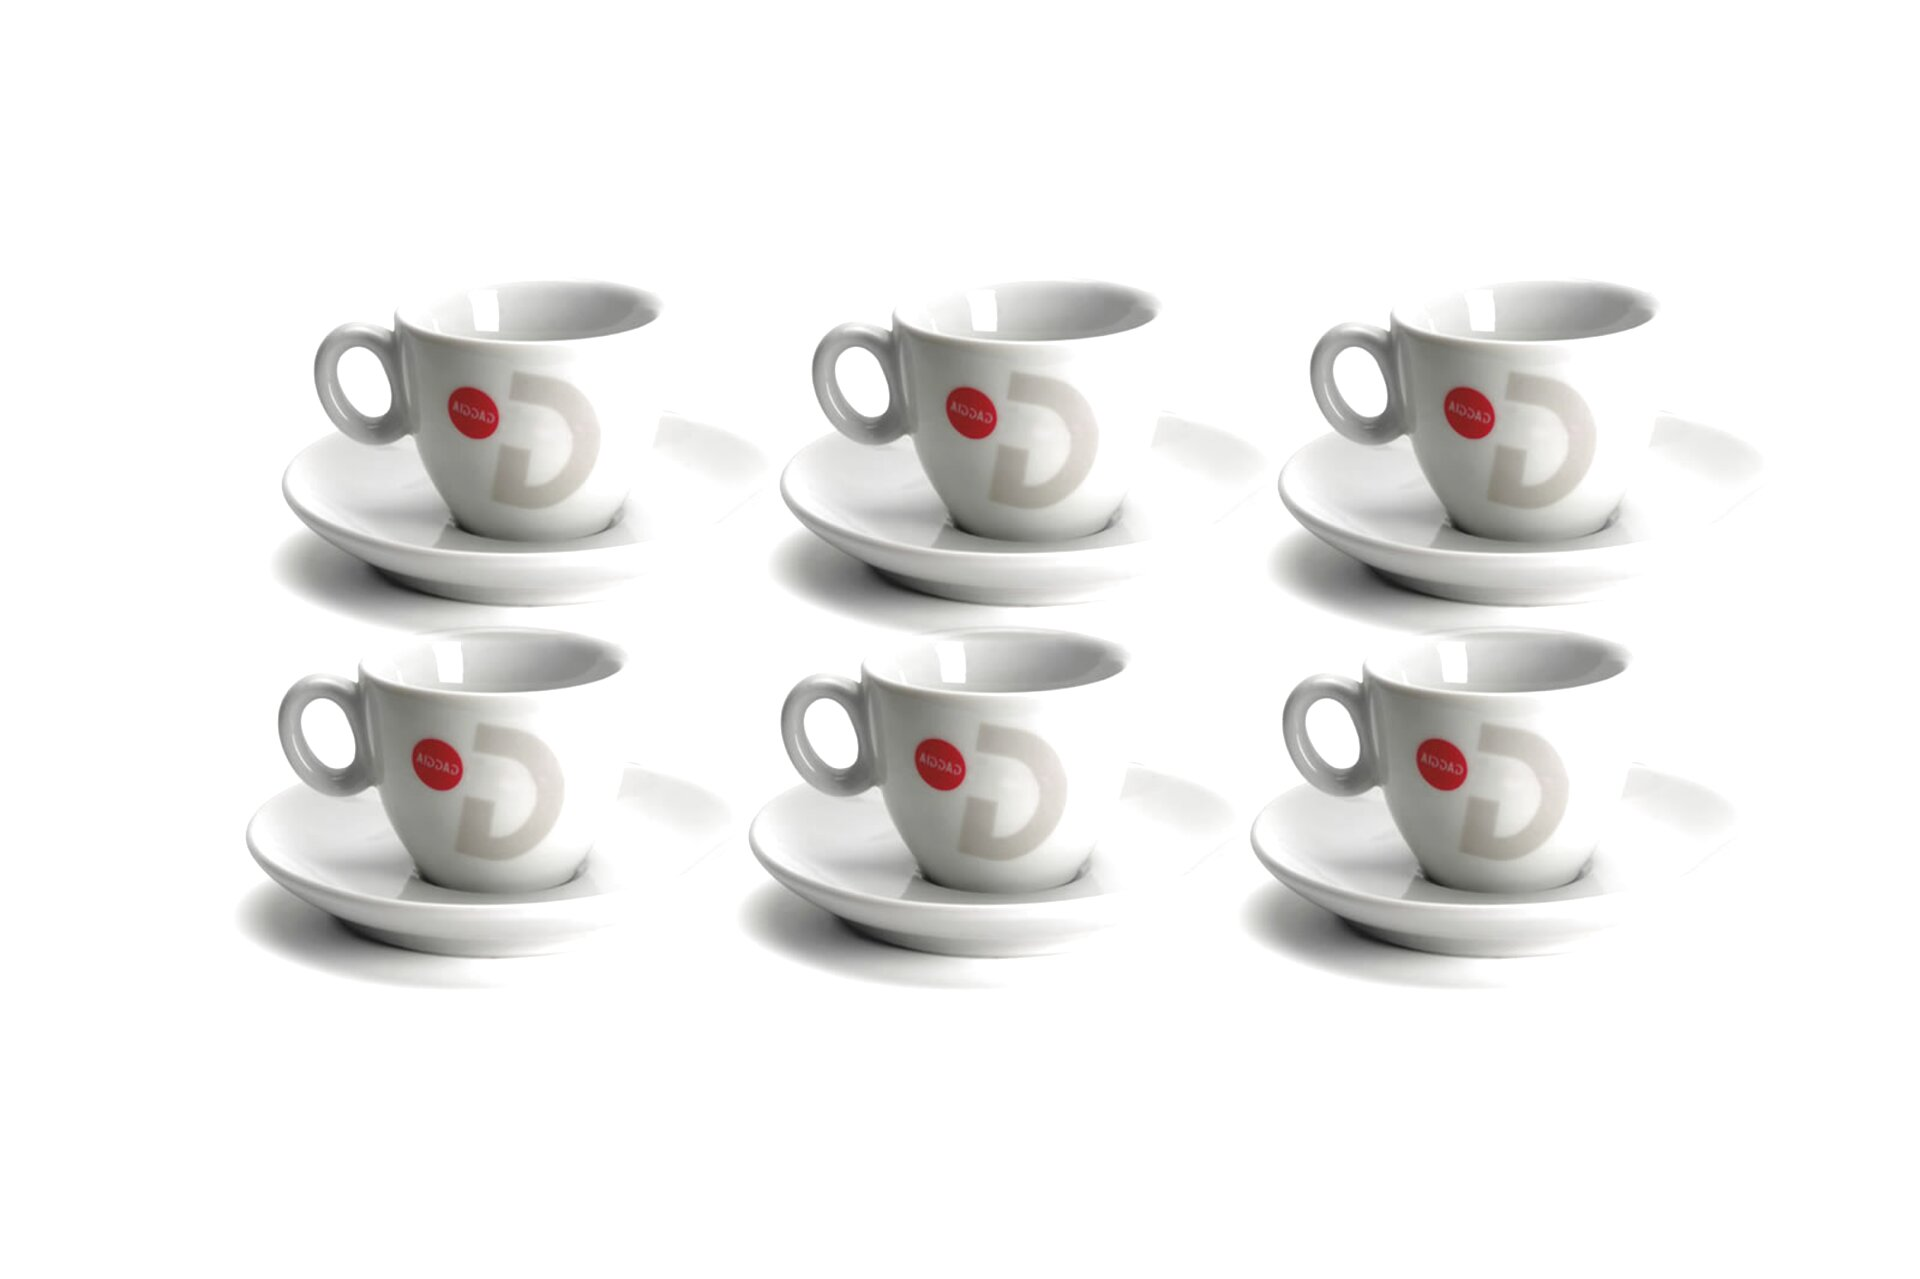 gaggia espresso cups for sale